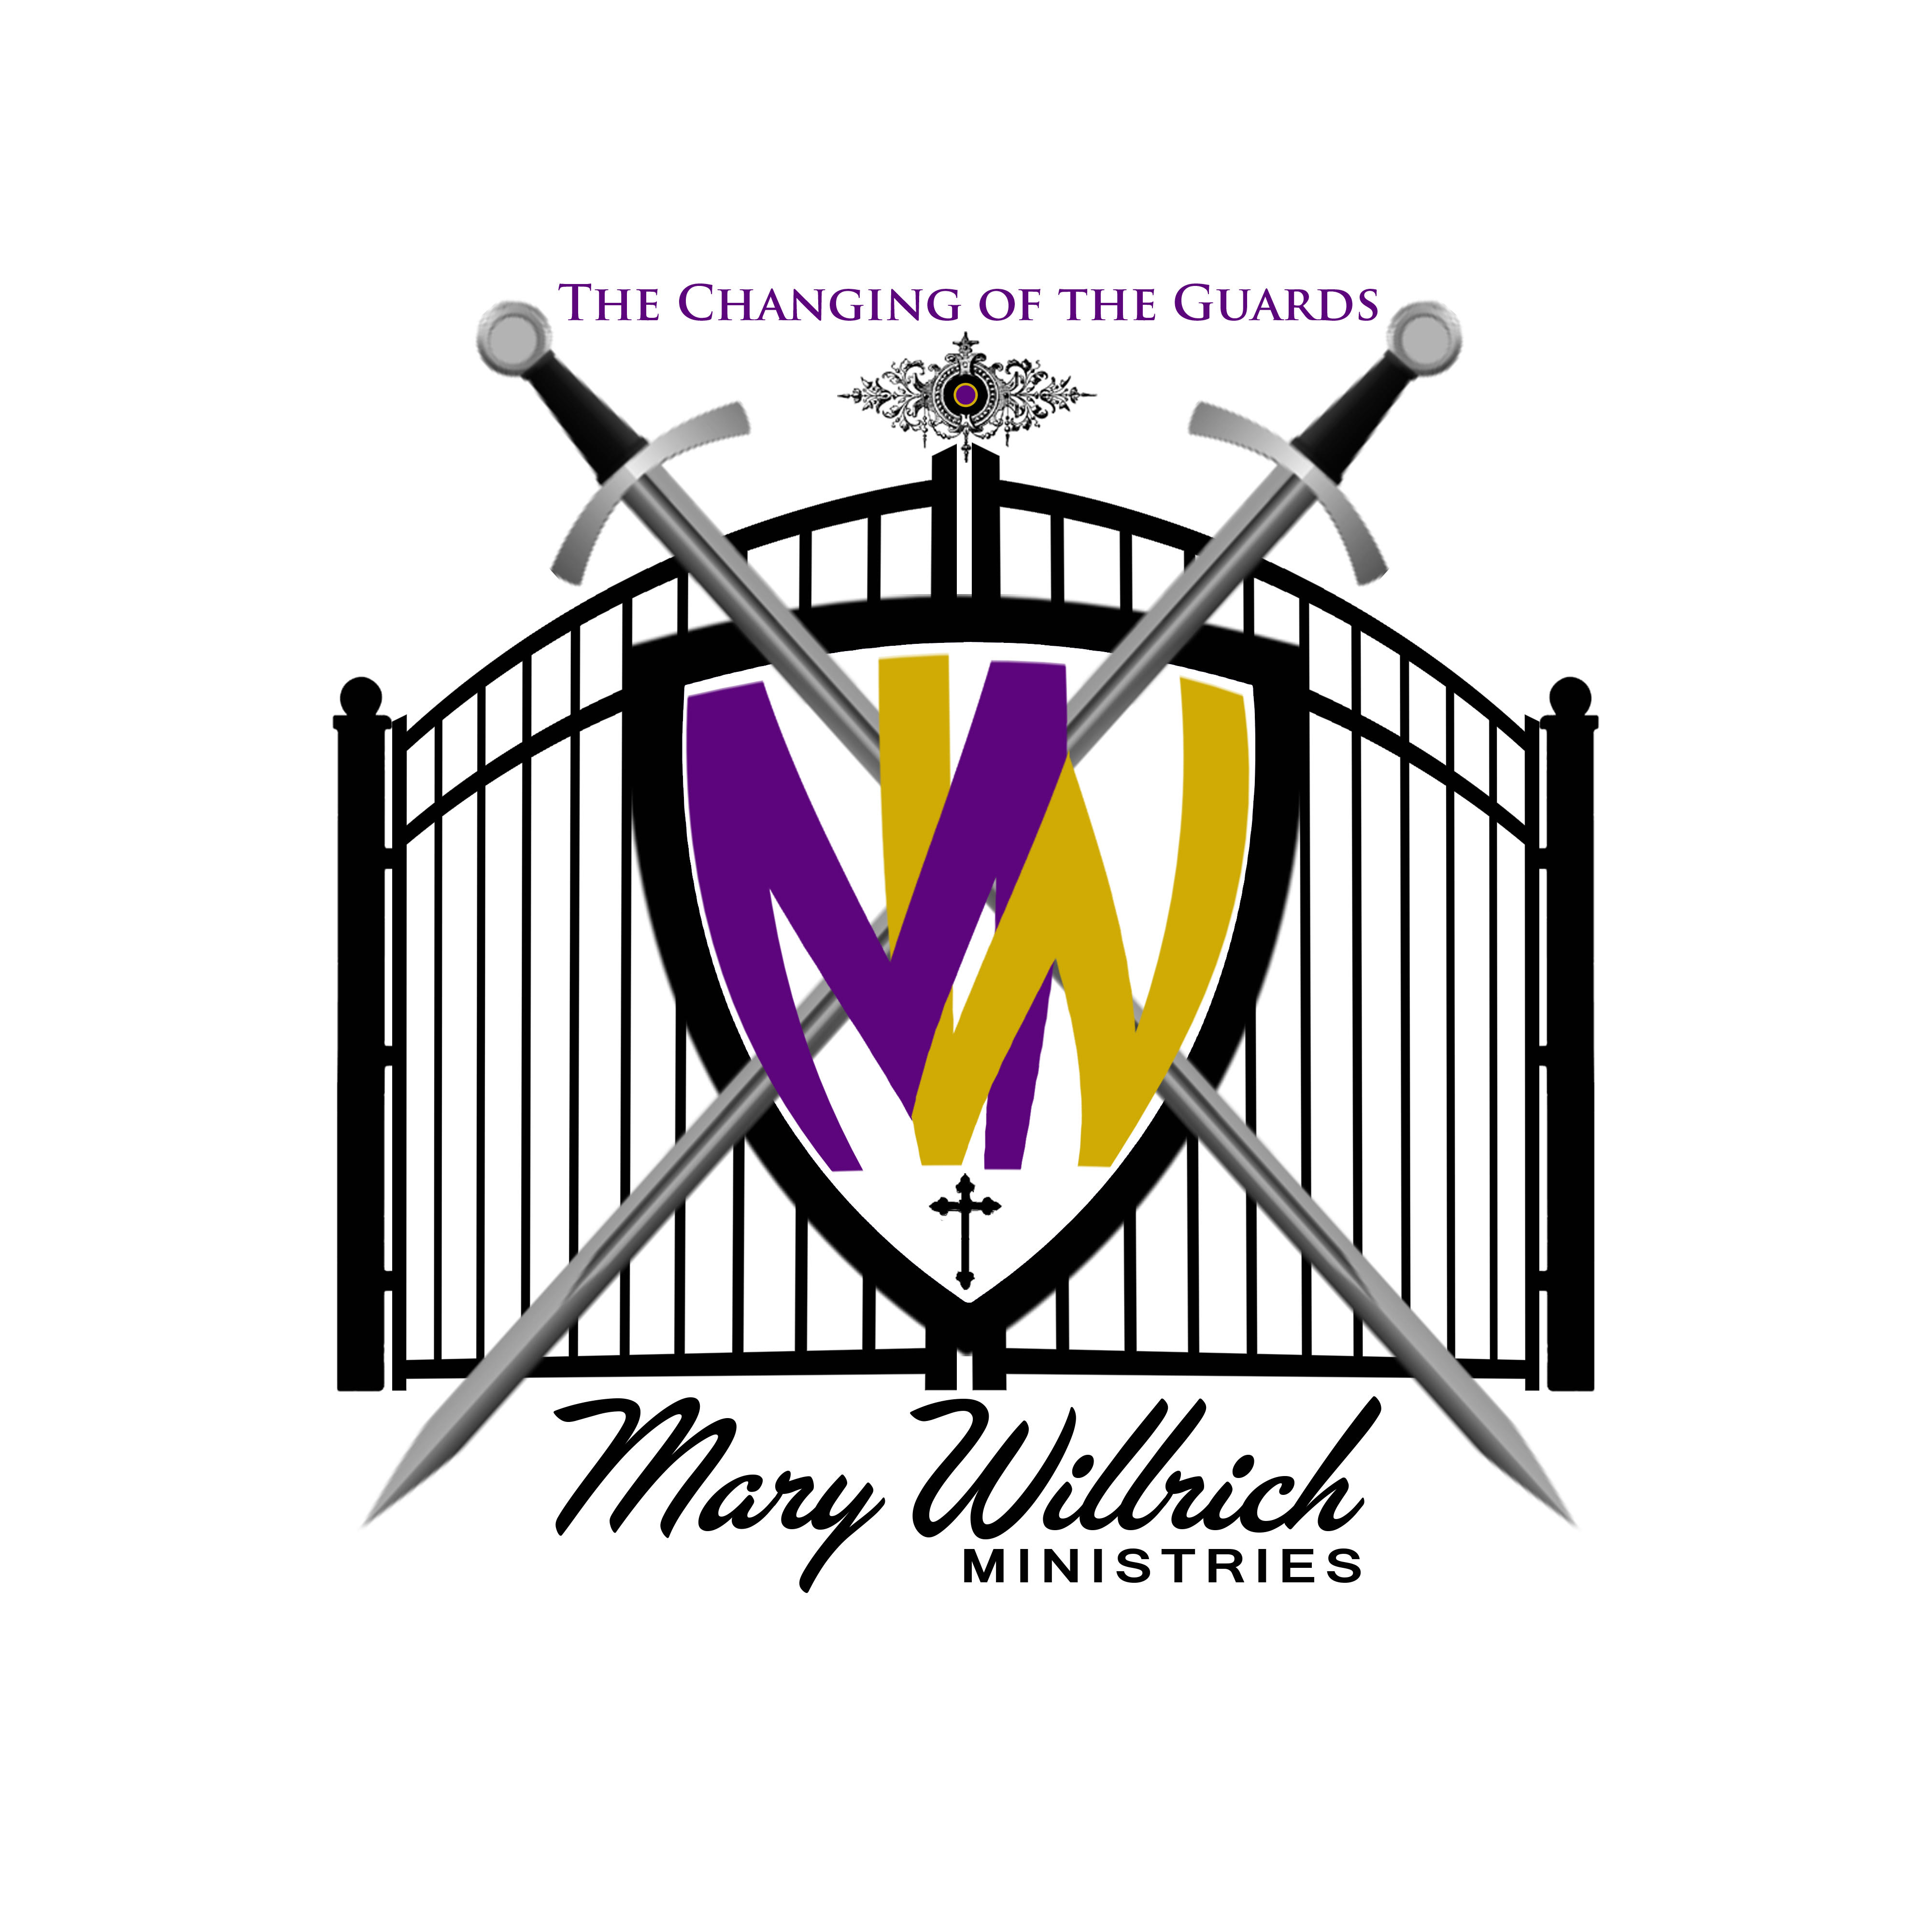 Mary Willrich Ministries